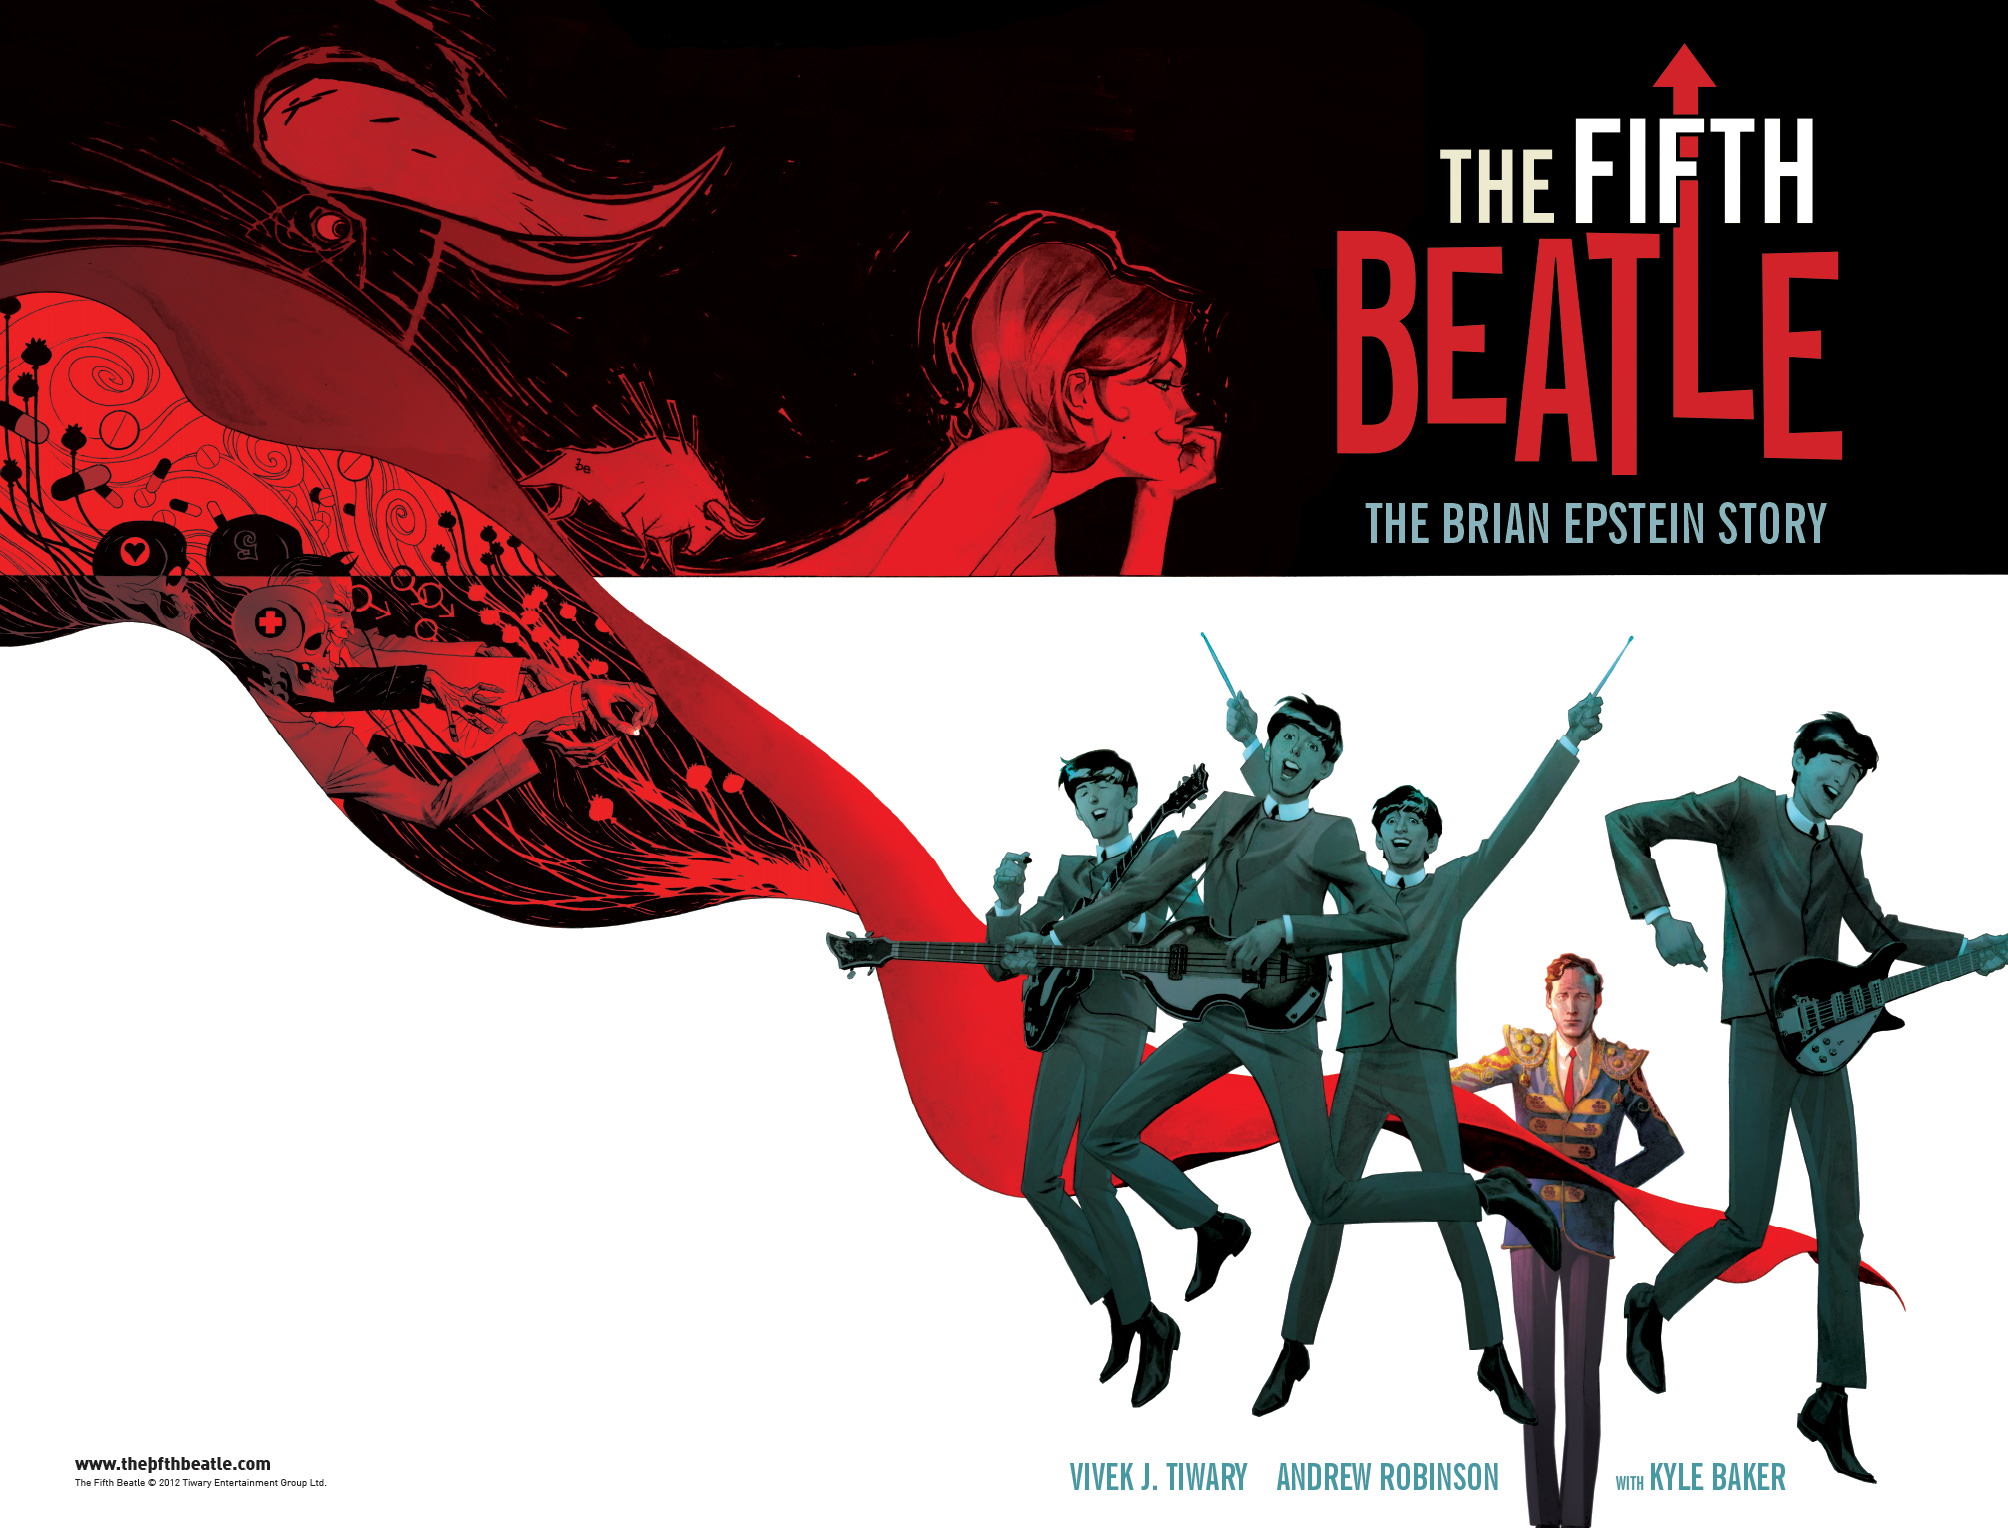 The-Fifth-Beatle-©-2012-Tiwary-Entertainment-Group-Ltd.